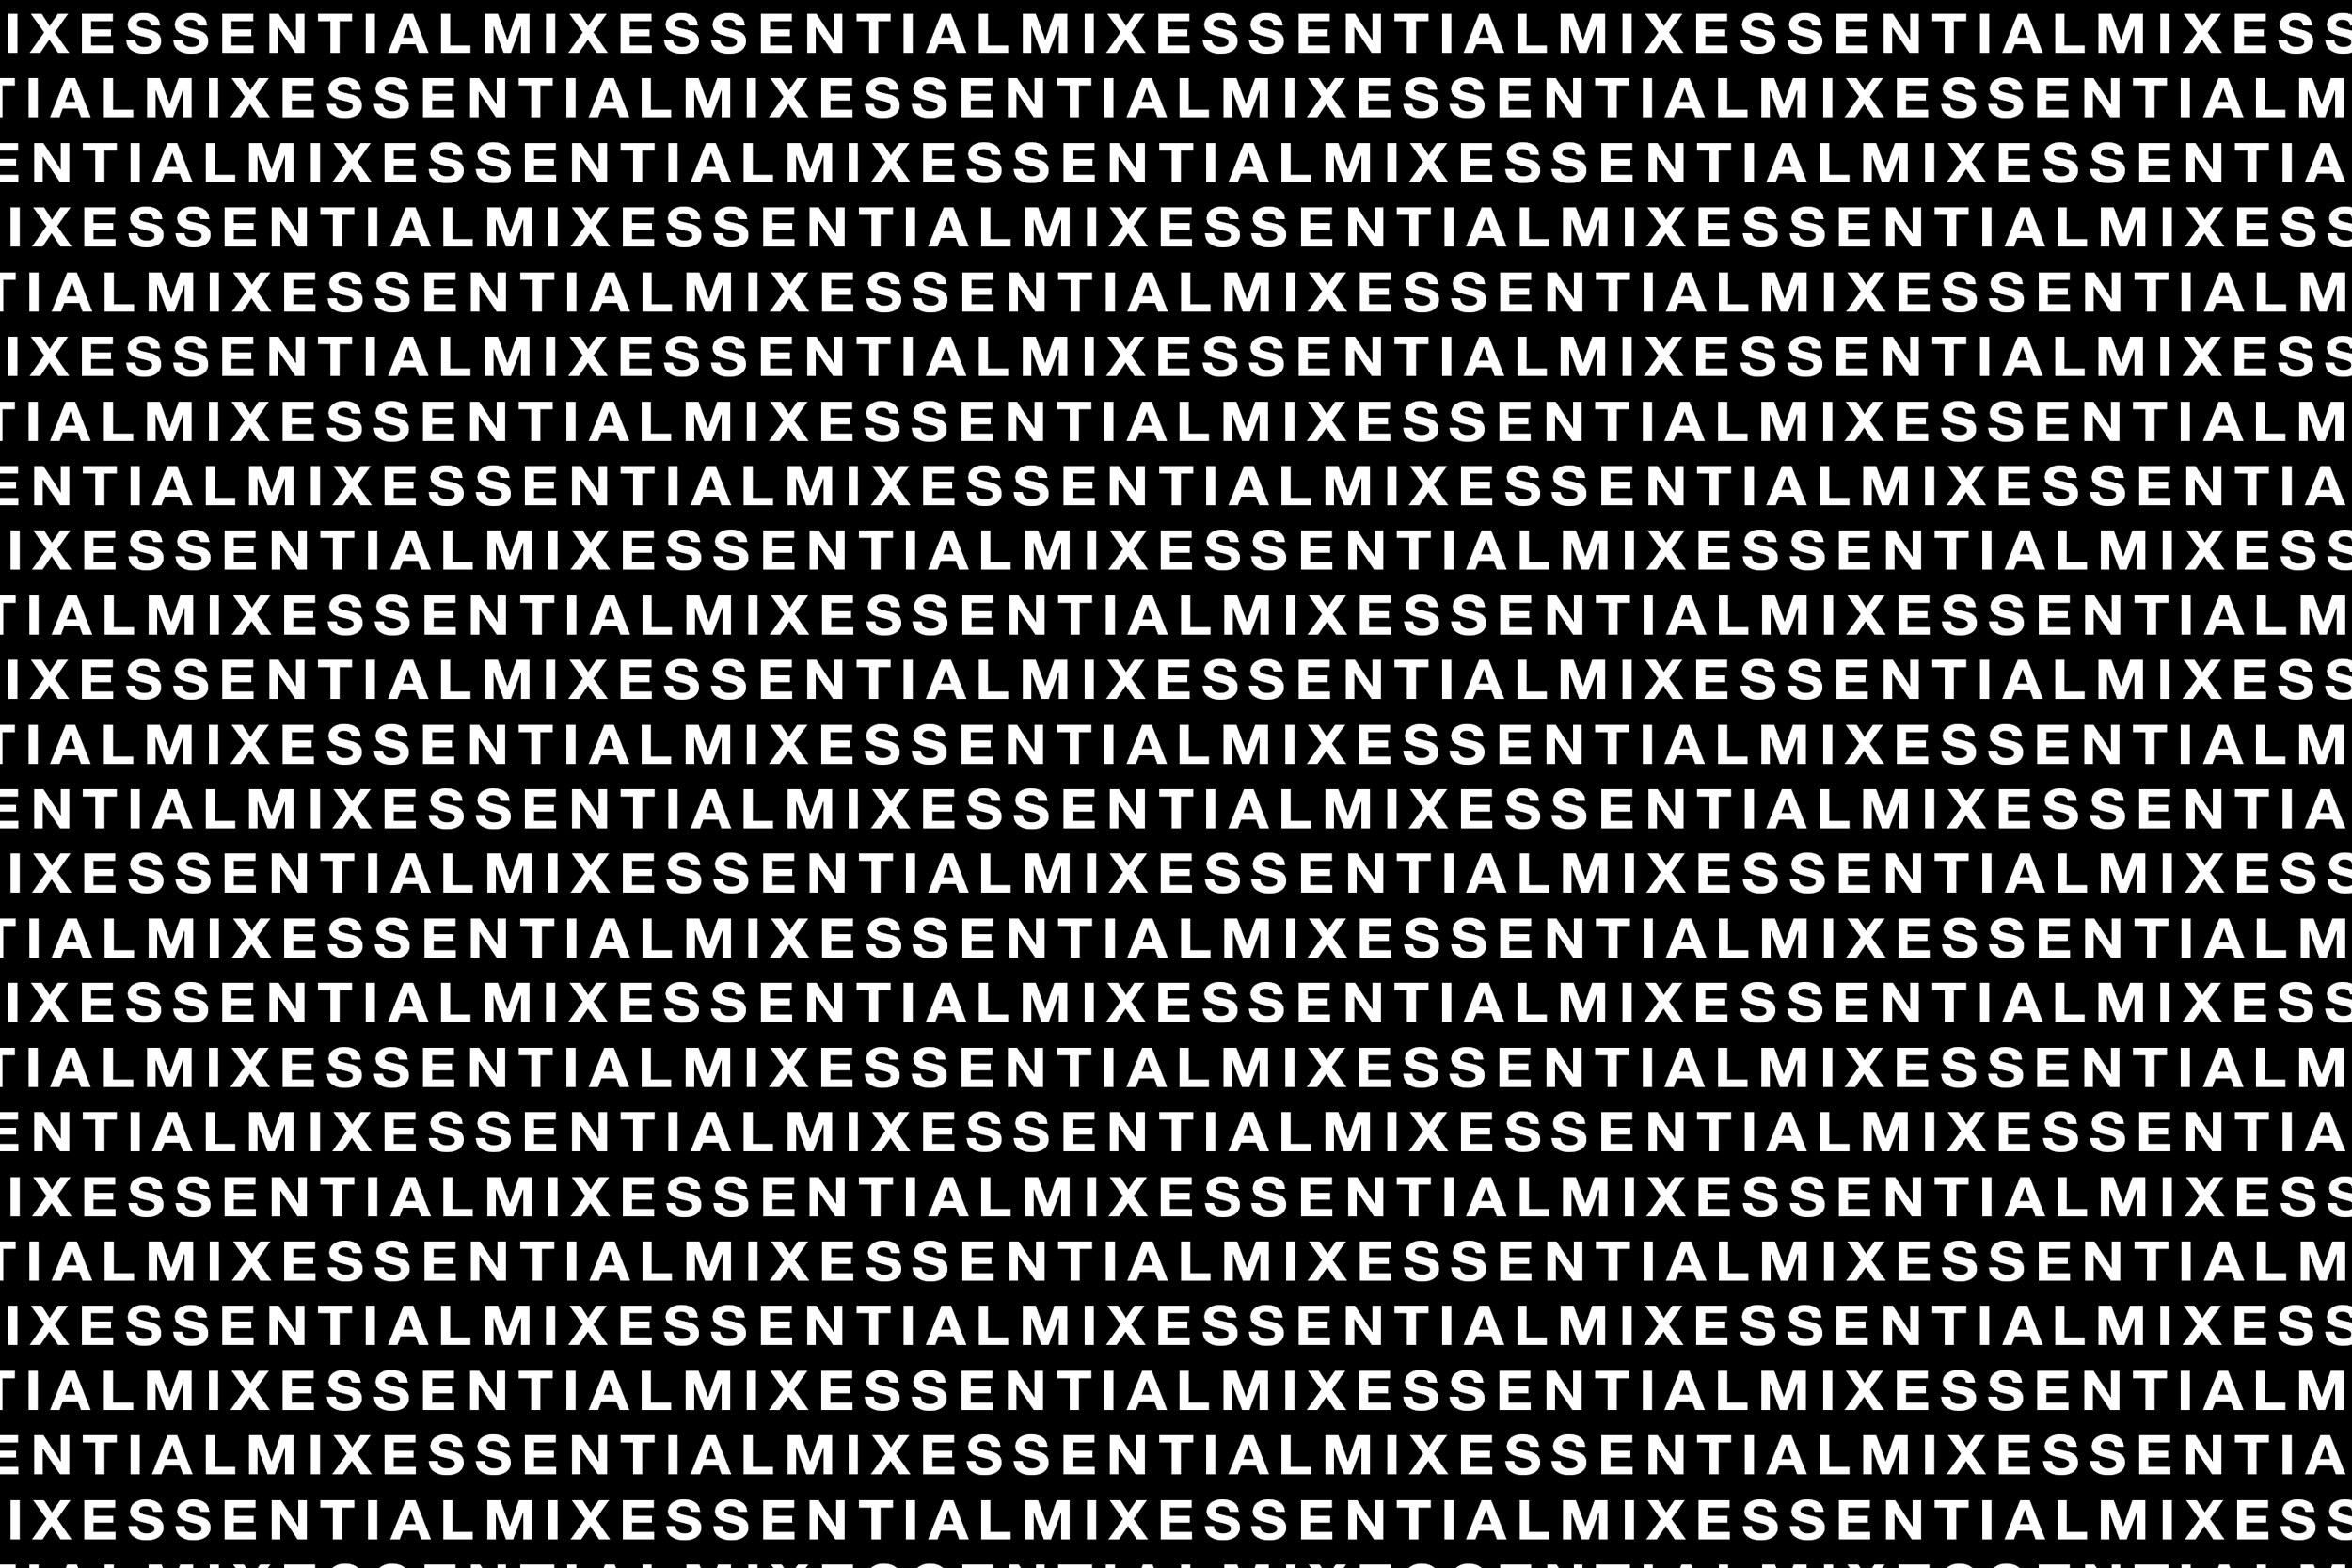 essential mix